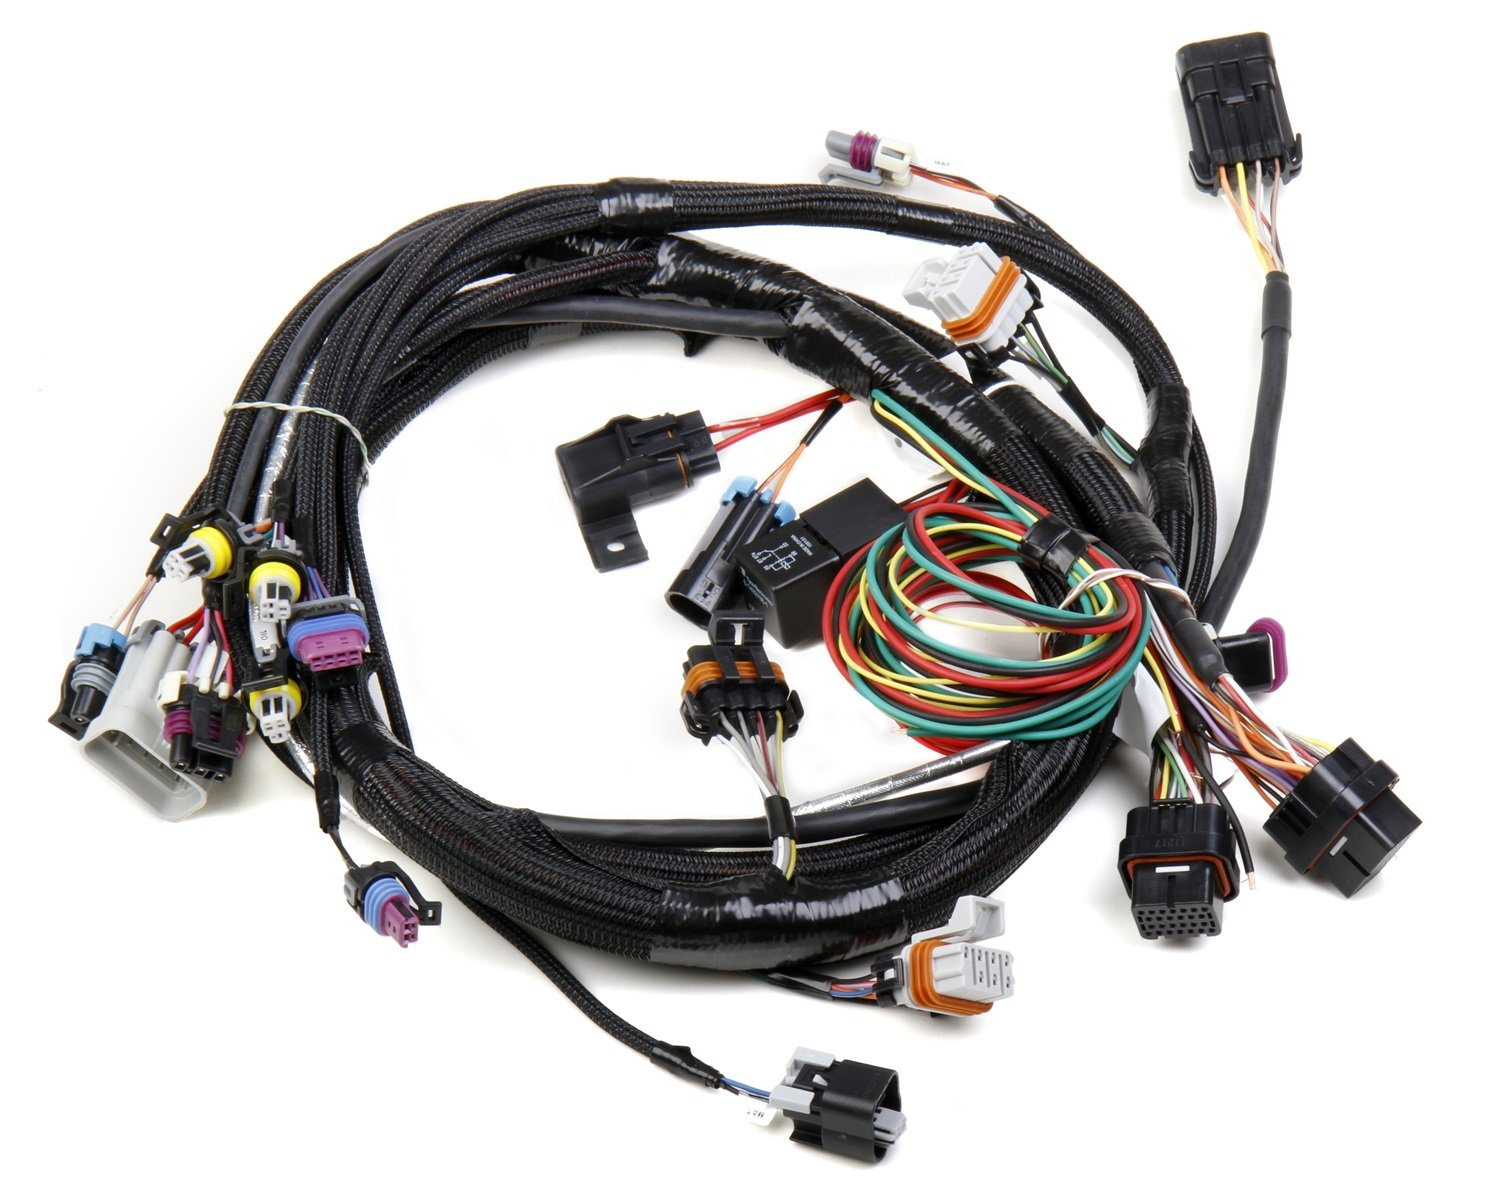 71R9M48Oc L._SL1500_ amazon com holley 558 102 ls1 main harness automotive 6.5 Diesel Wiring Harness at n-0.co